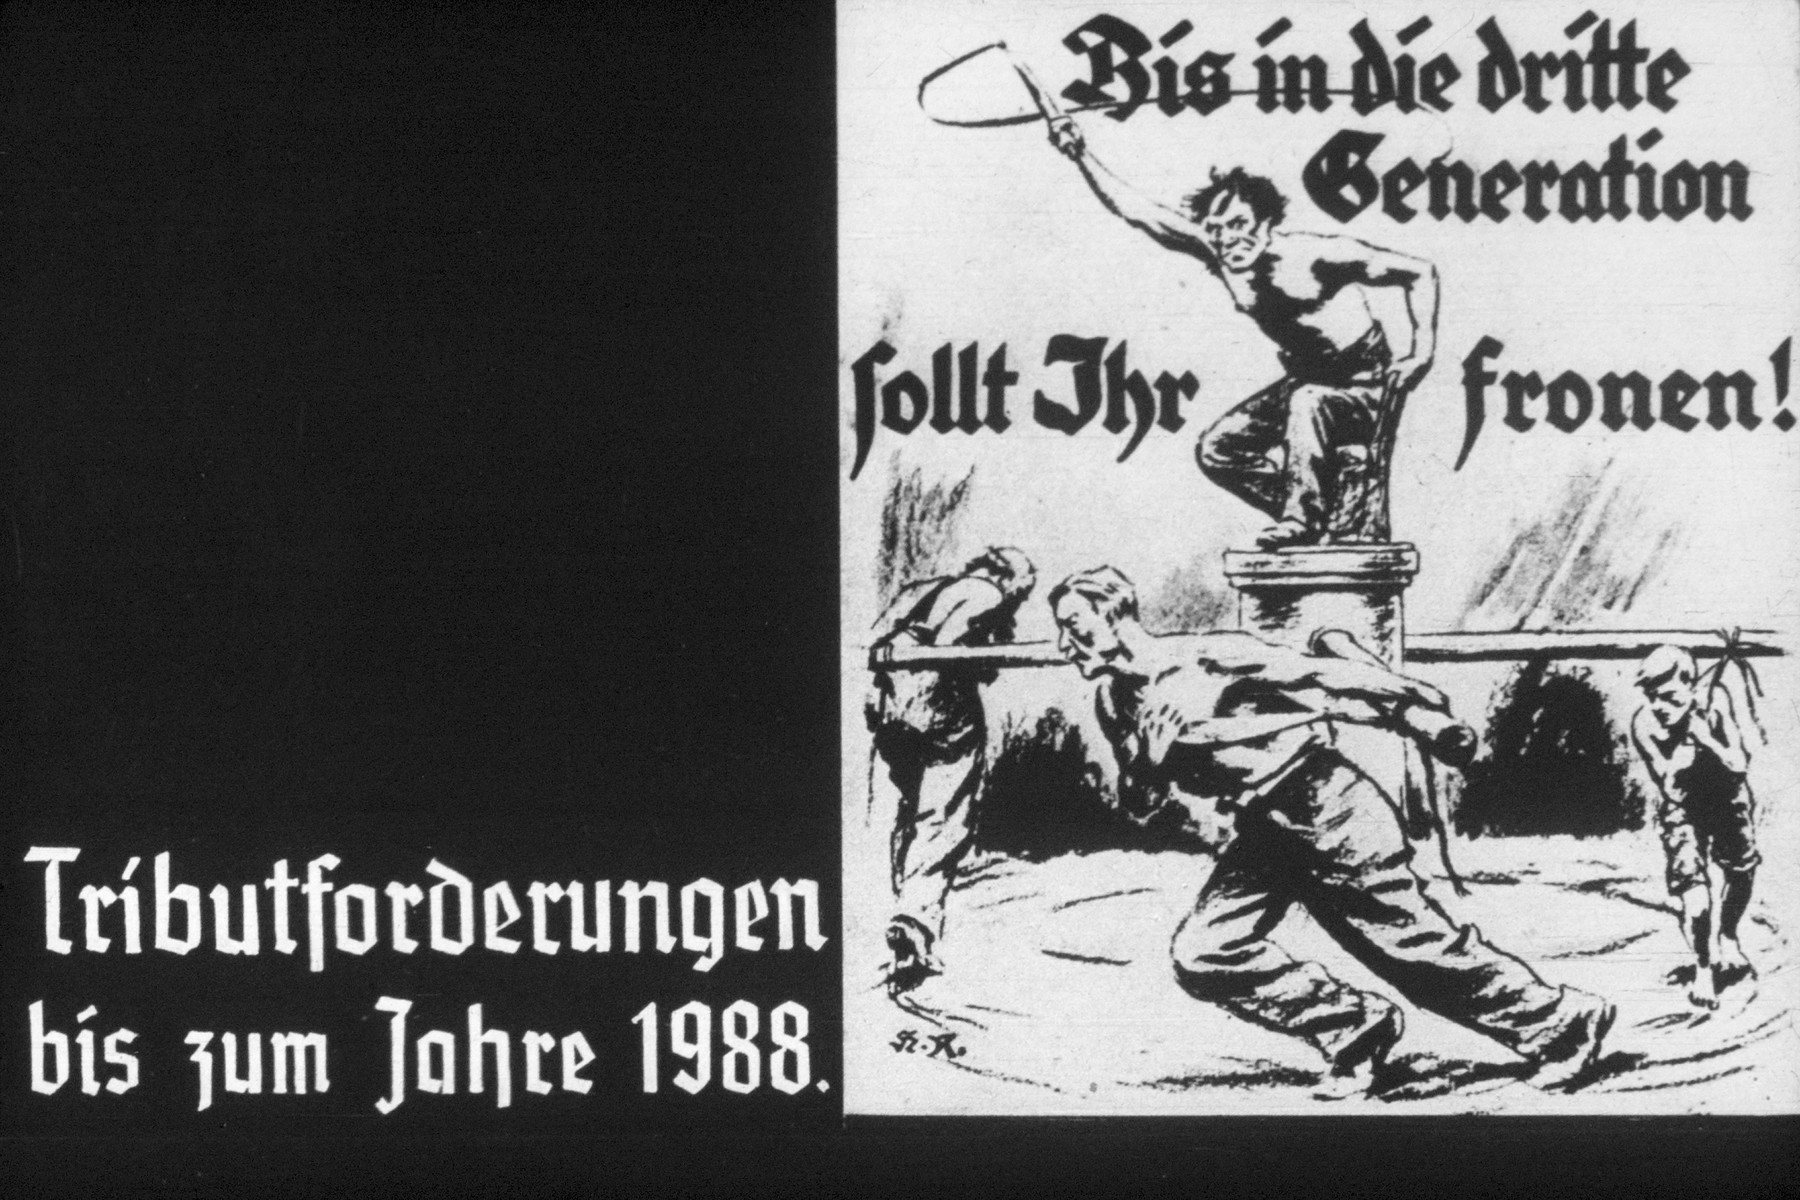 18th slide from a Hitler Youth slideshow about the aftermath of WWI, Versailles, how it was overcome and the rise of Nazism.  Tributforderungen bis zum Jahre 1988 // Tribute demands by the year 1988  Illustration reads: Bis in die dritte Generation sollt Ihr fronen! (Until the third generation you shall toil!)